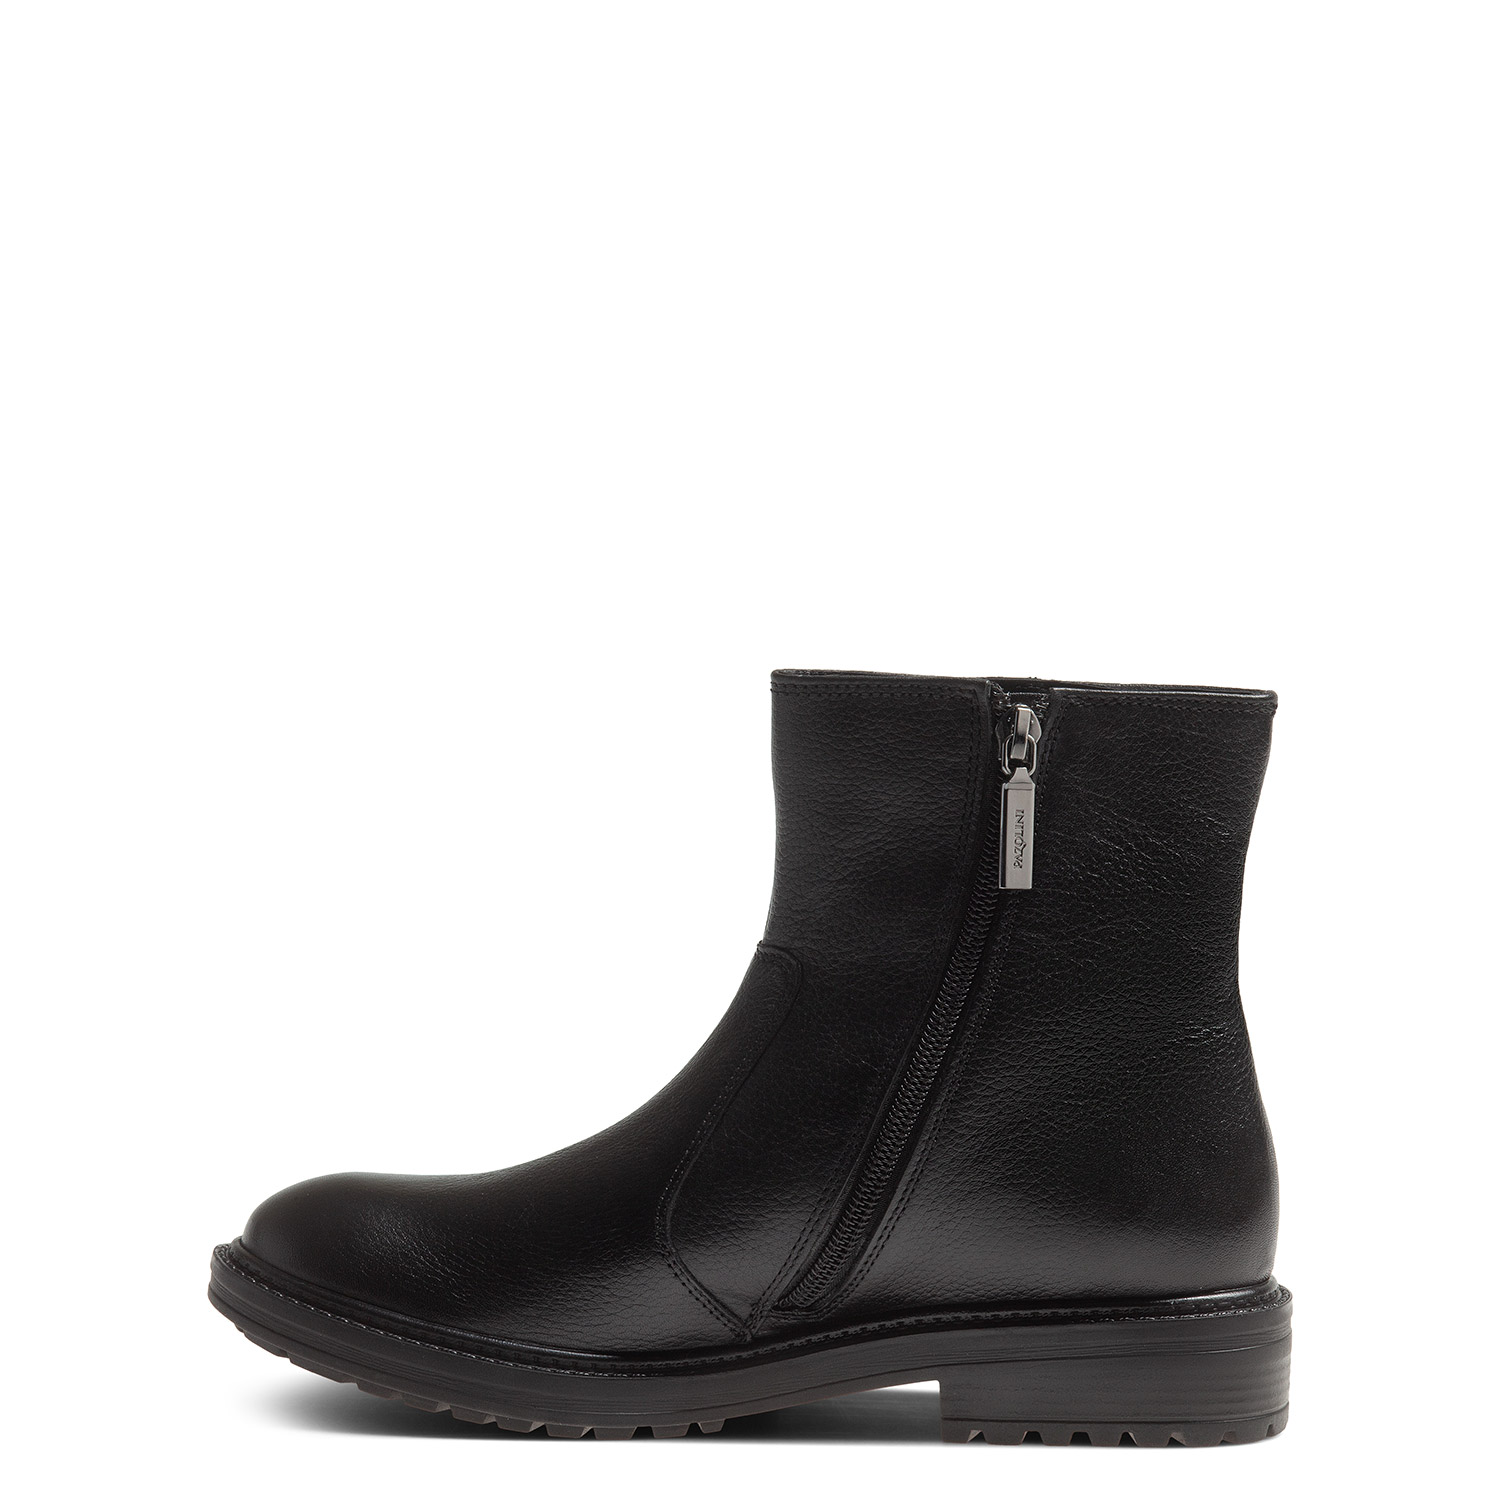 Women's ankle boots PAZOLINI OO-ANN14-1